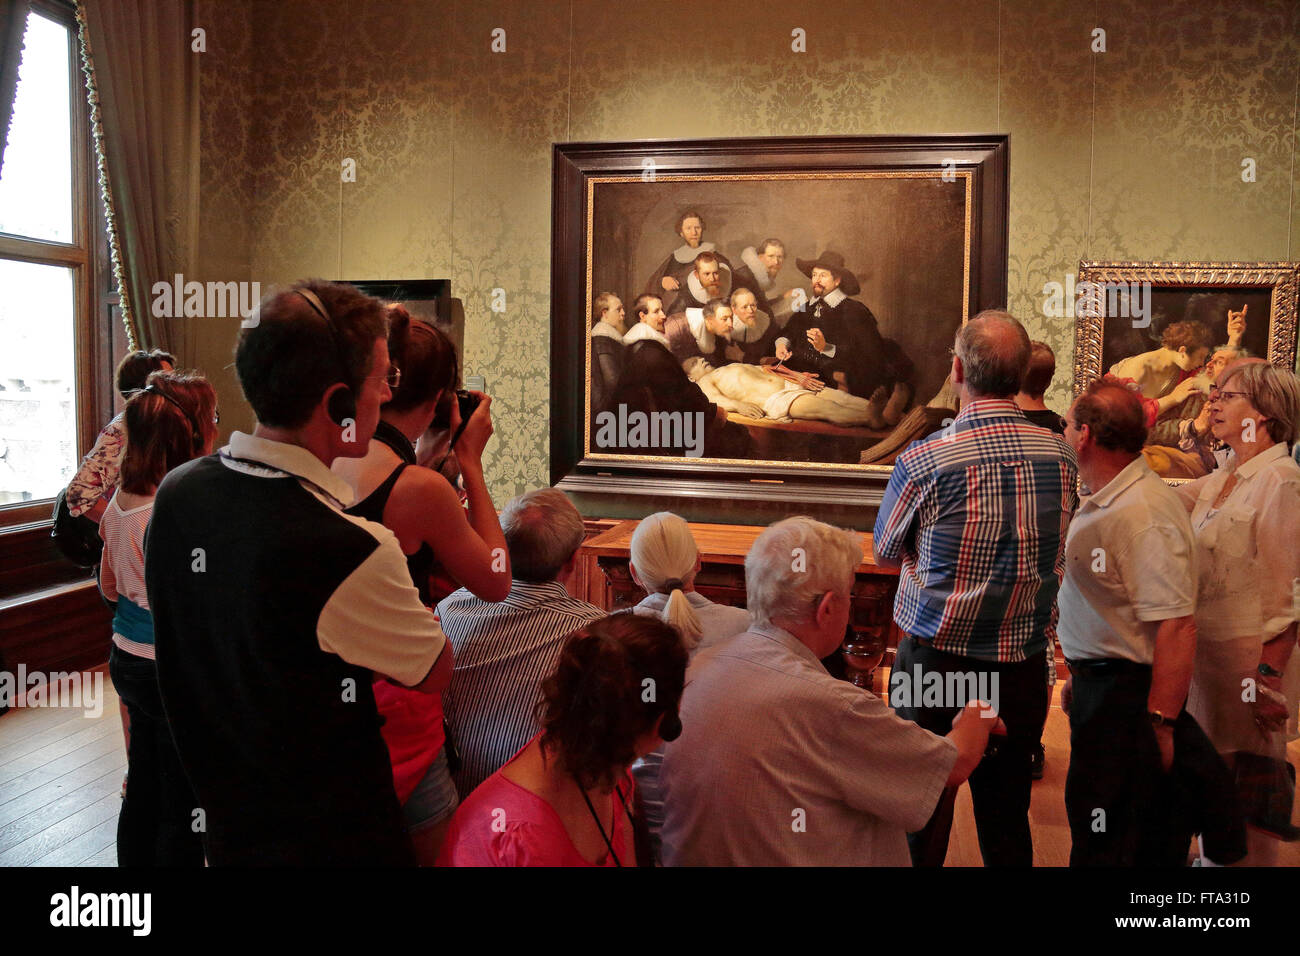 Visitors Admire The Anatomy Lesson Of Dr Nicolaes Tulp By